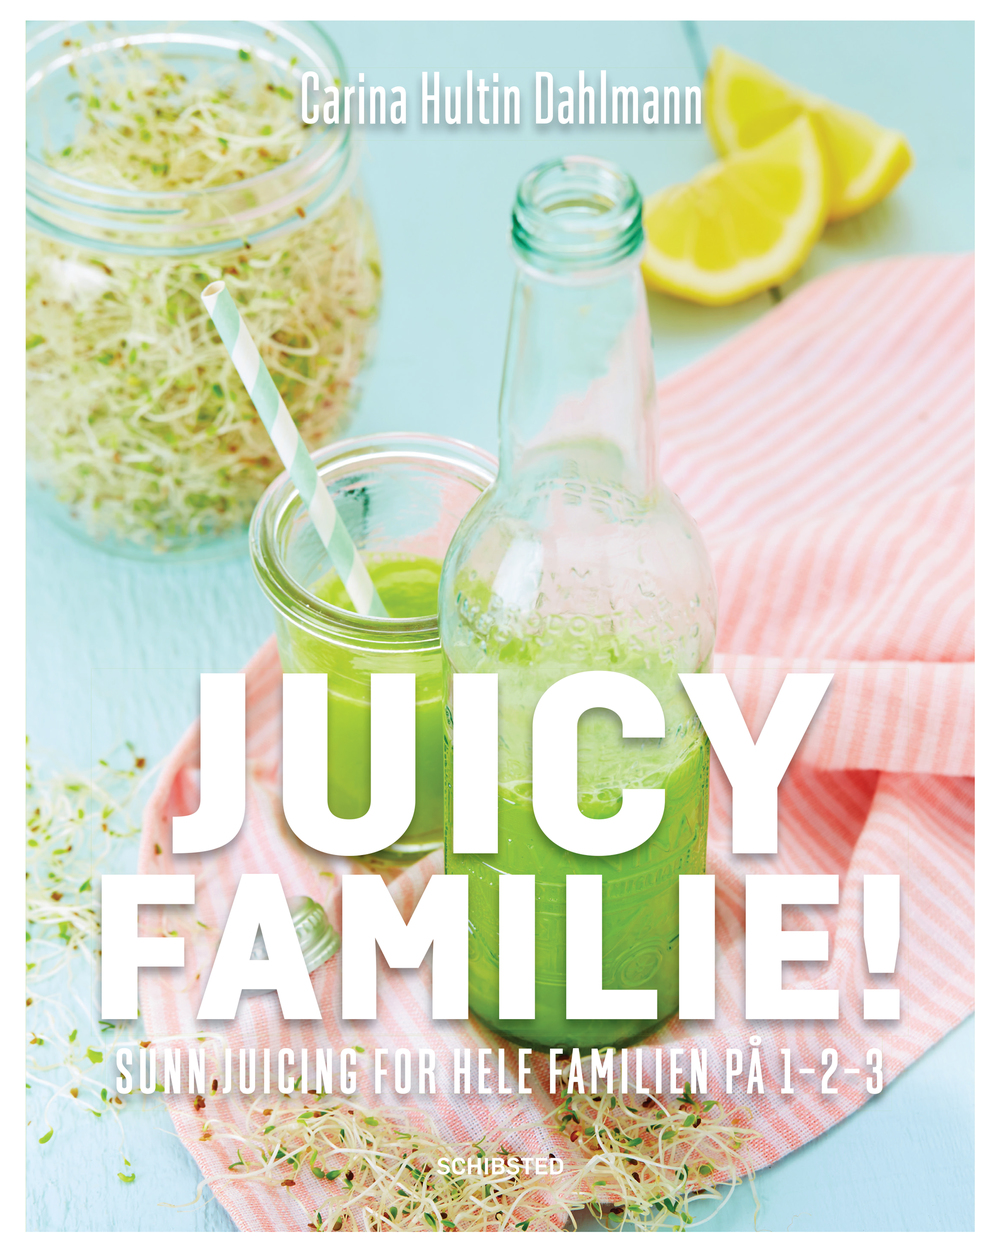 Juicy Familie, sunn juicing for hele familien på 1-2-3.